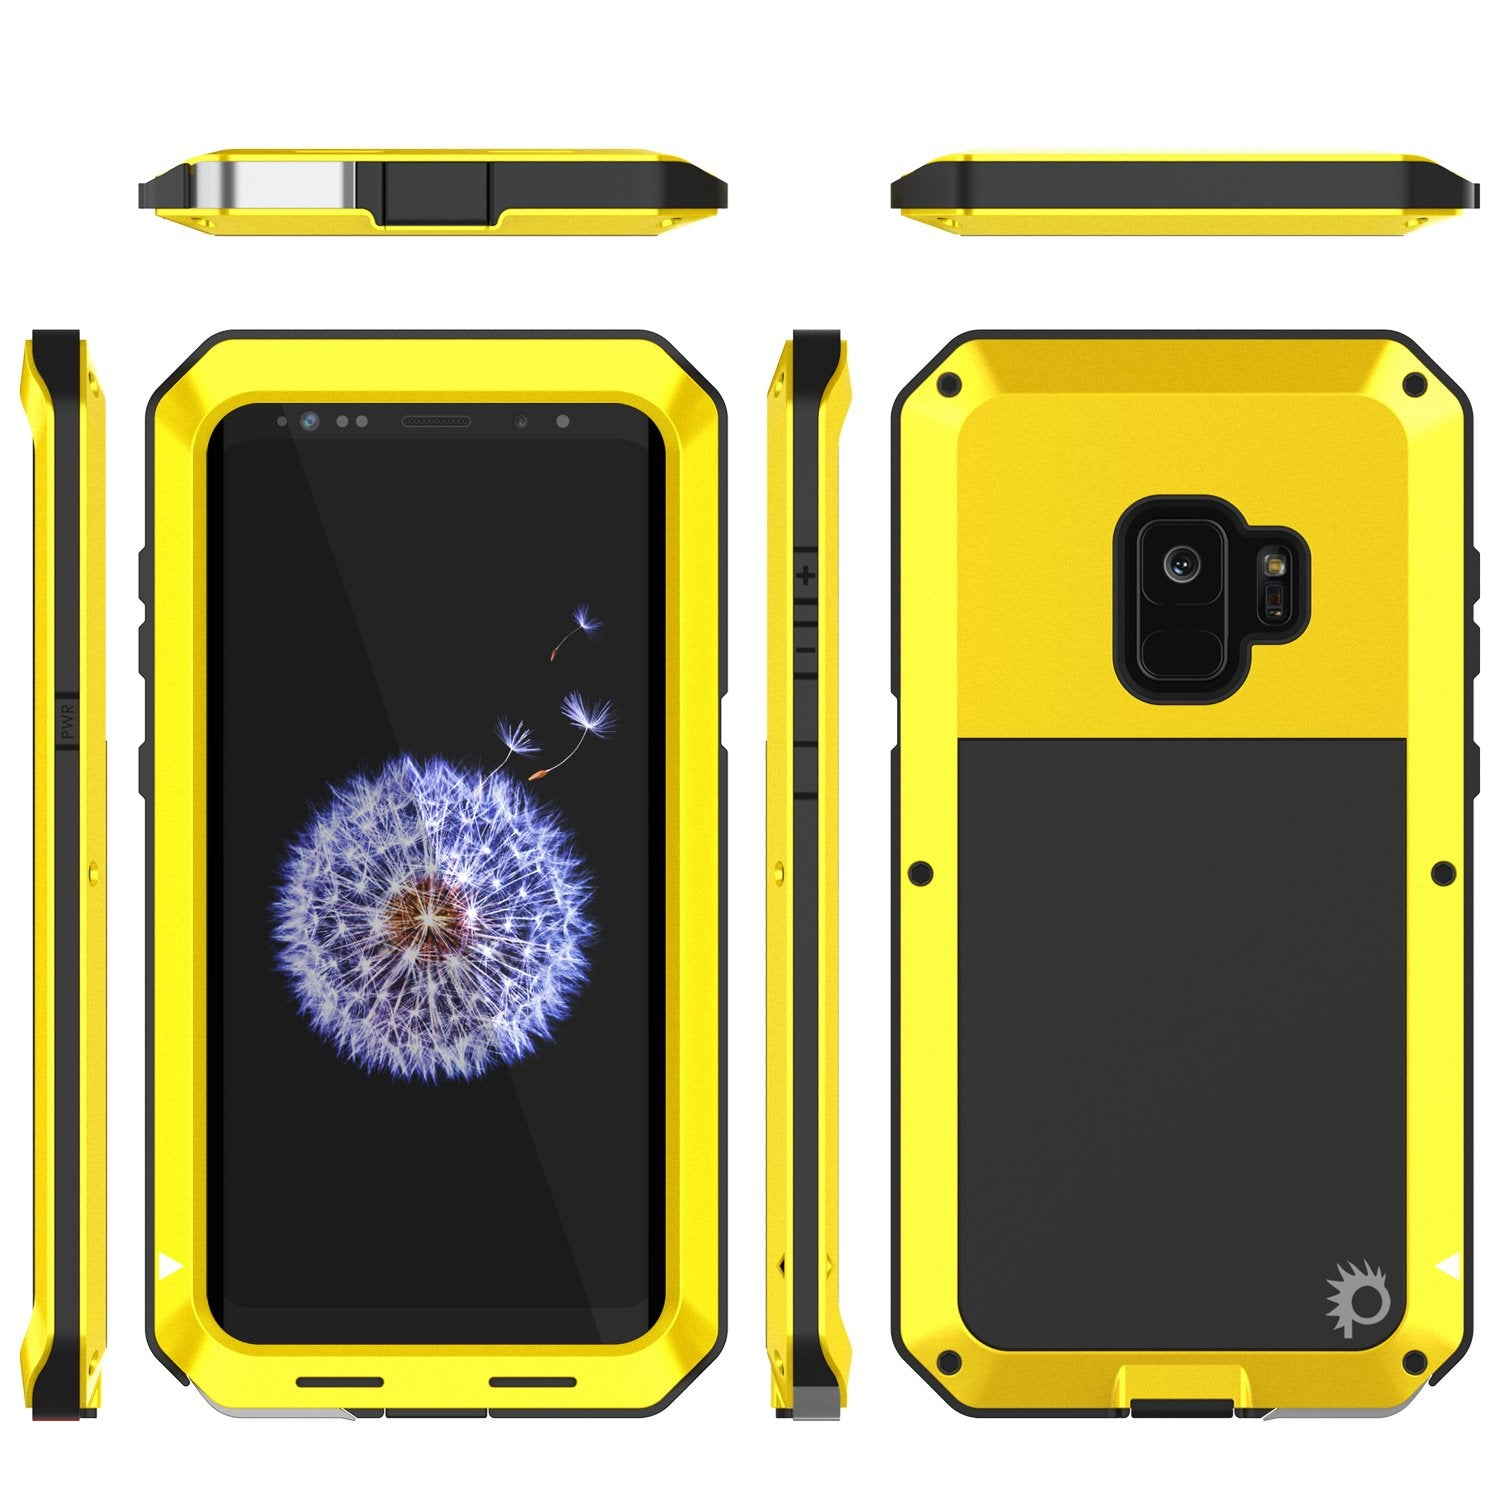 newest 1a6b7 2bcf2 Galaxy S9 Metal Case, Heavy Duty Military Grade Rugged case [Neon]